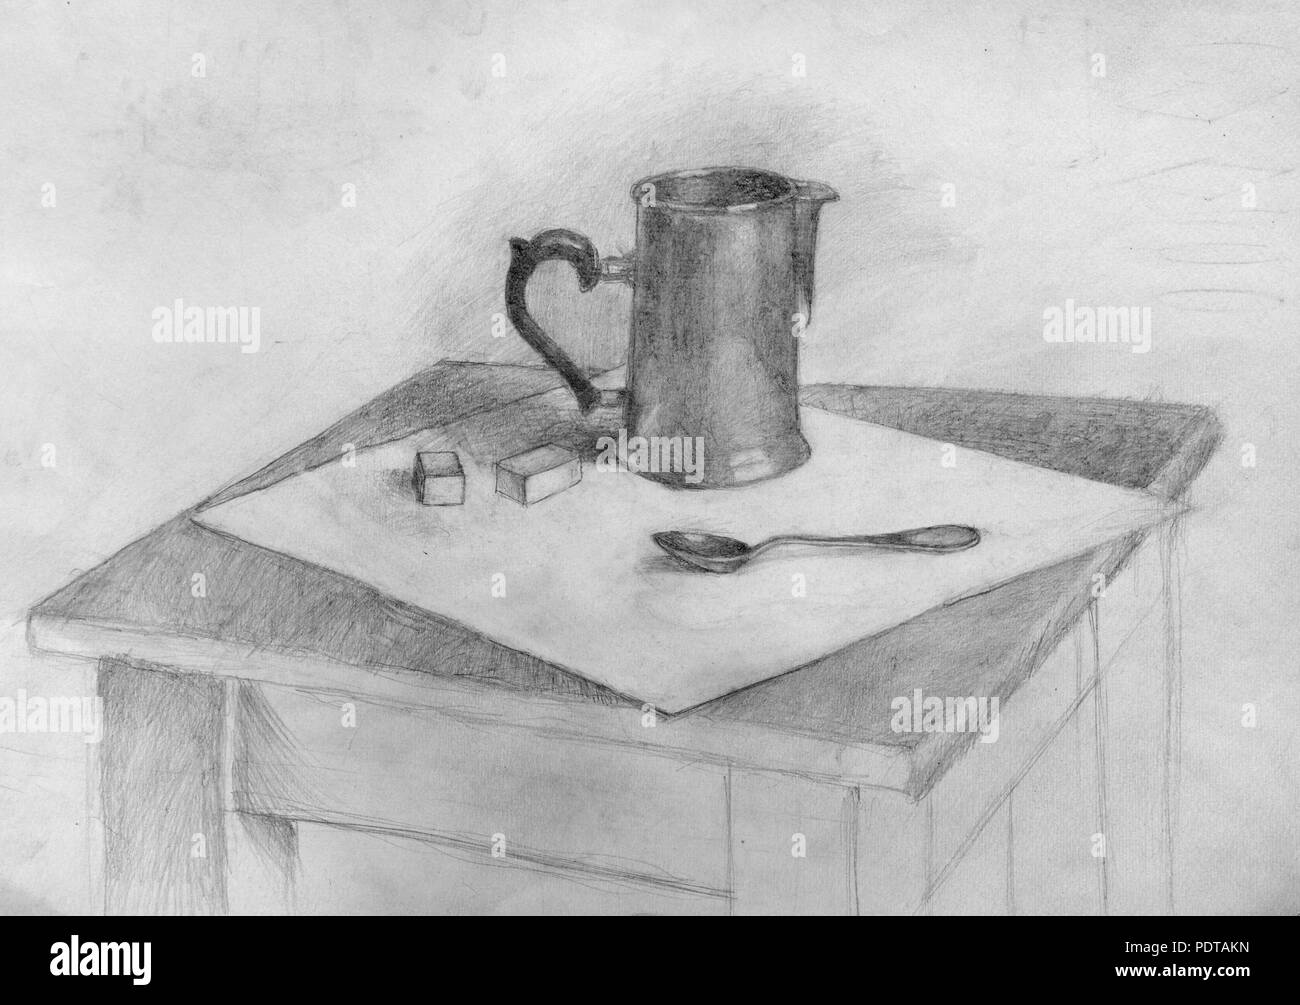 Still life pencil drawing sketch stock photo 215050185 alamy